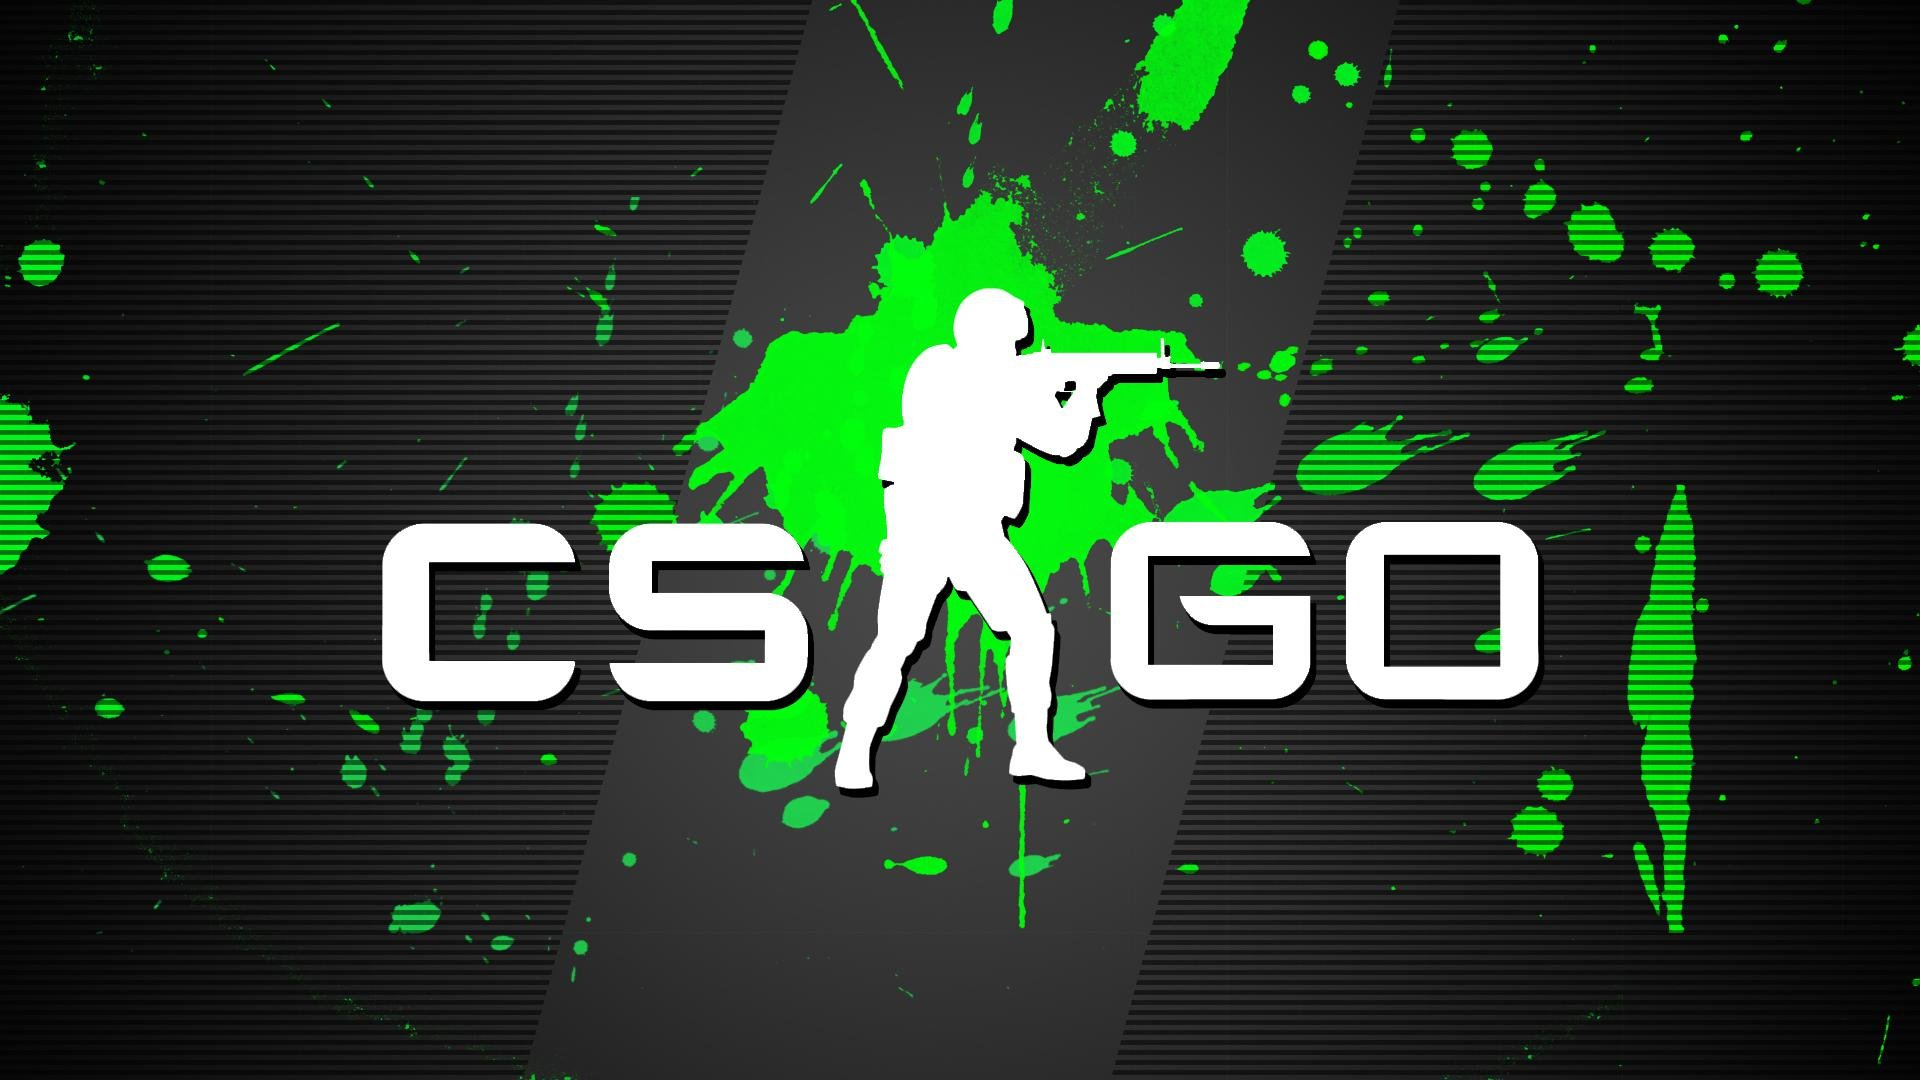 CS GO Wallpaper HD